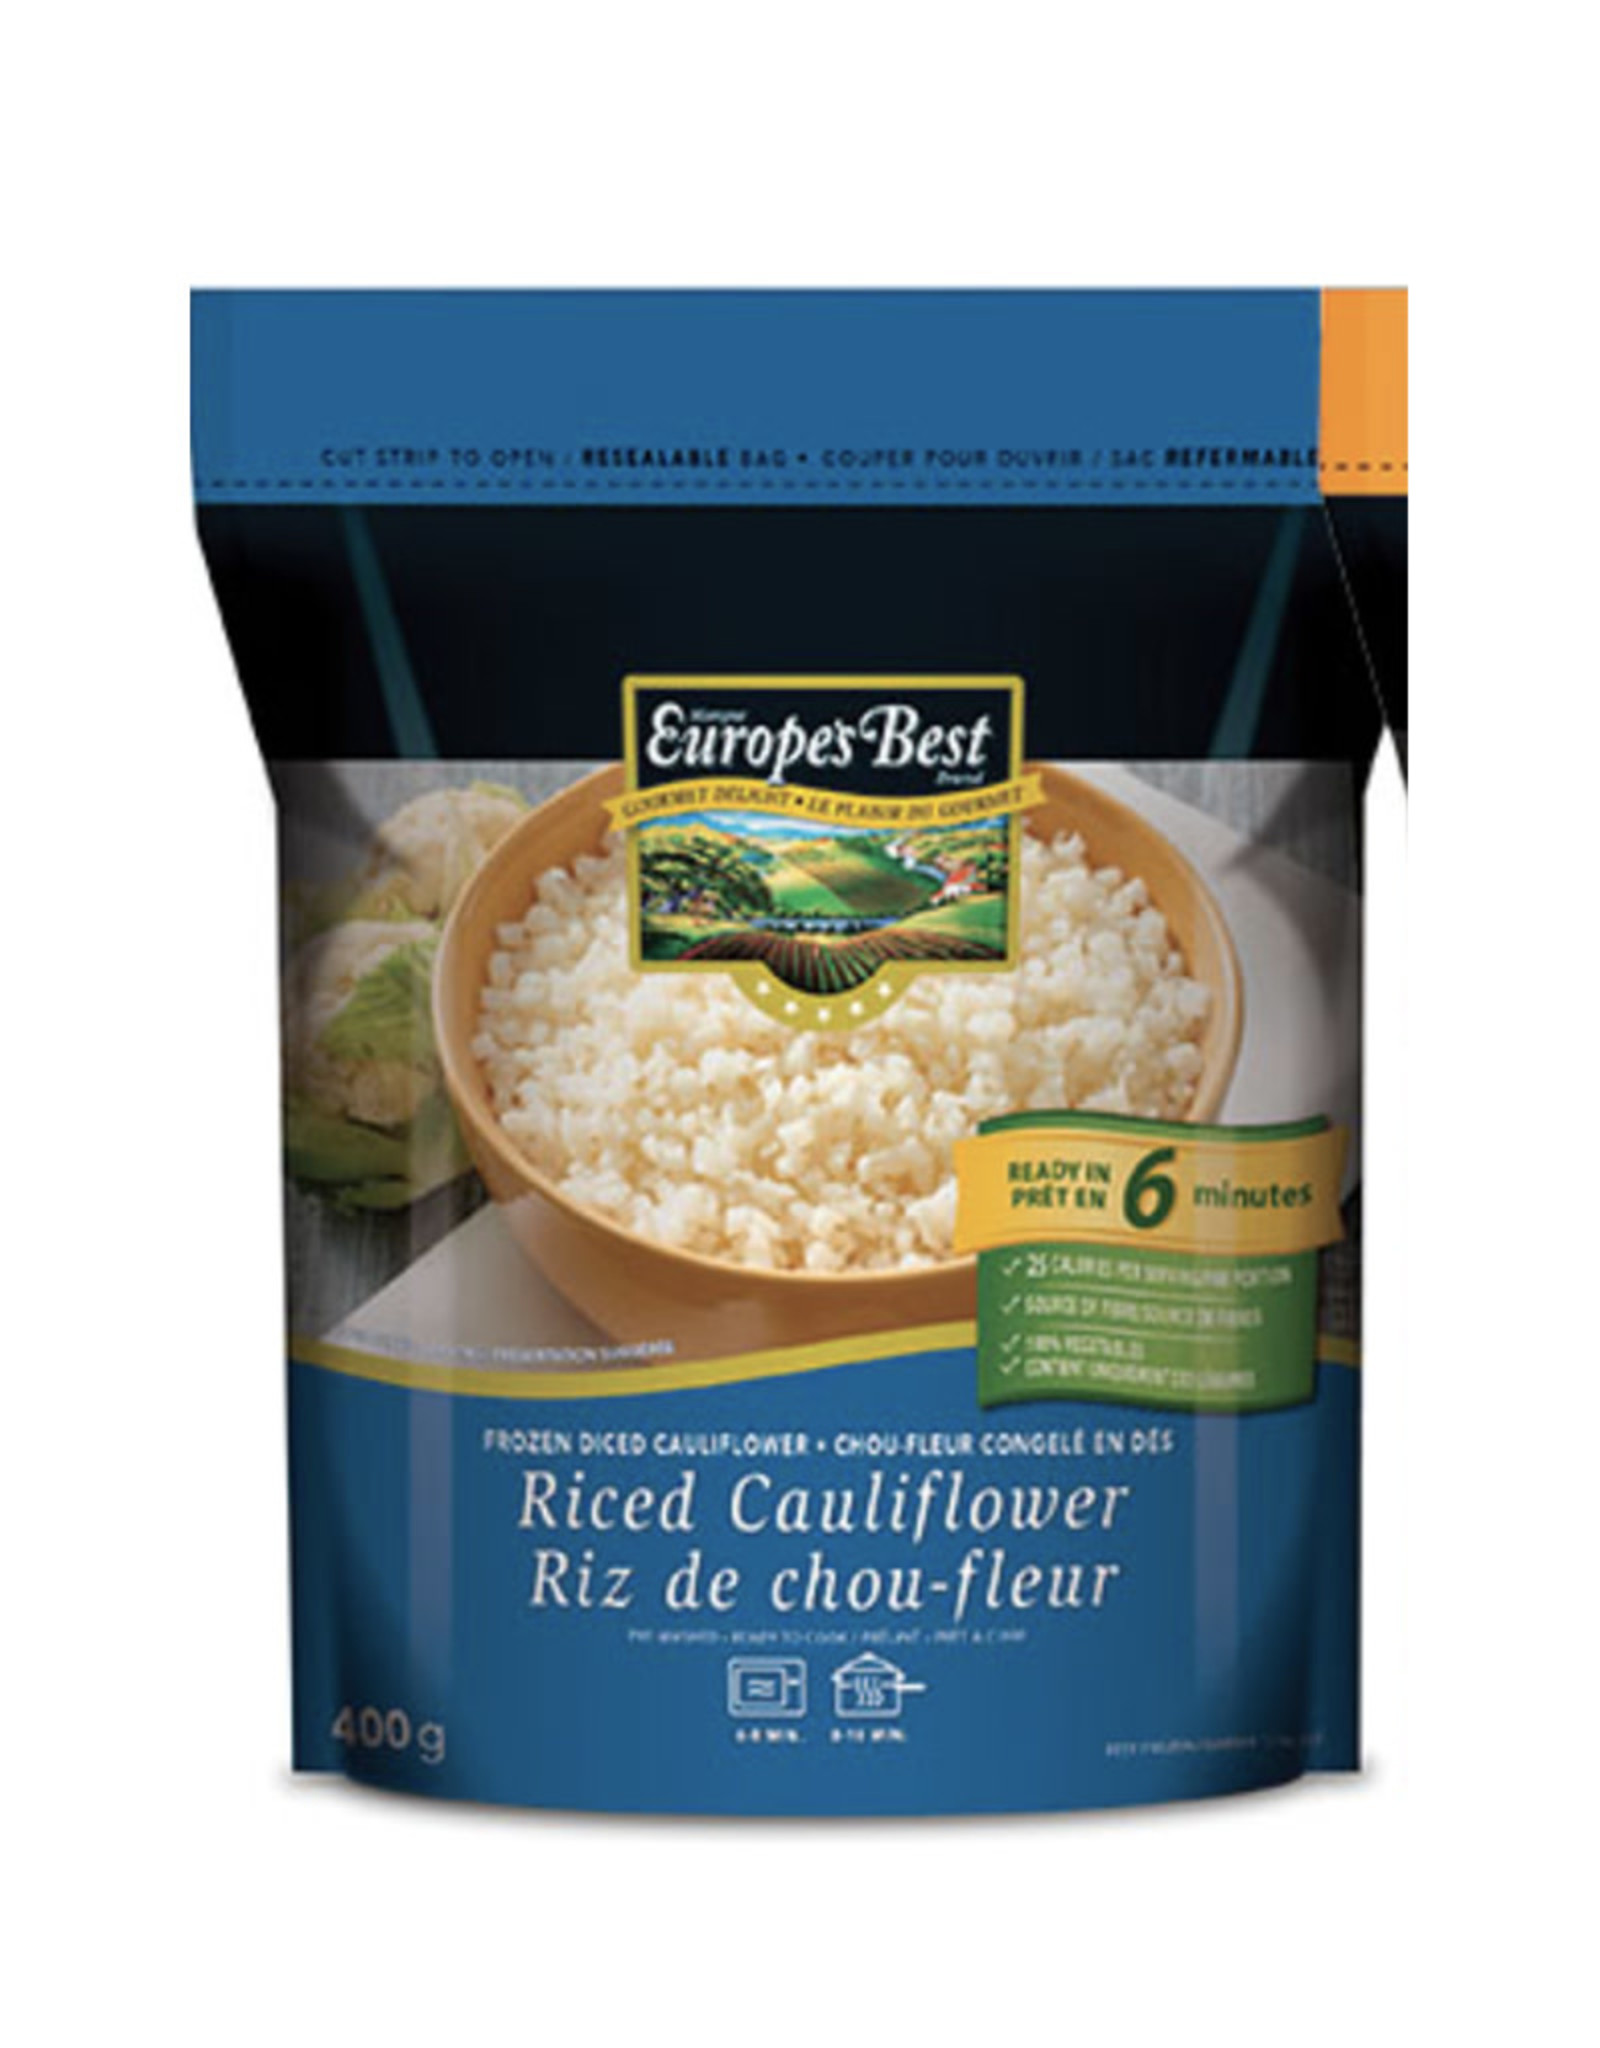 Europes Best Europes Best - Riced Cauliflower (400g)